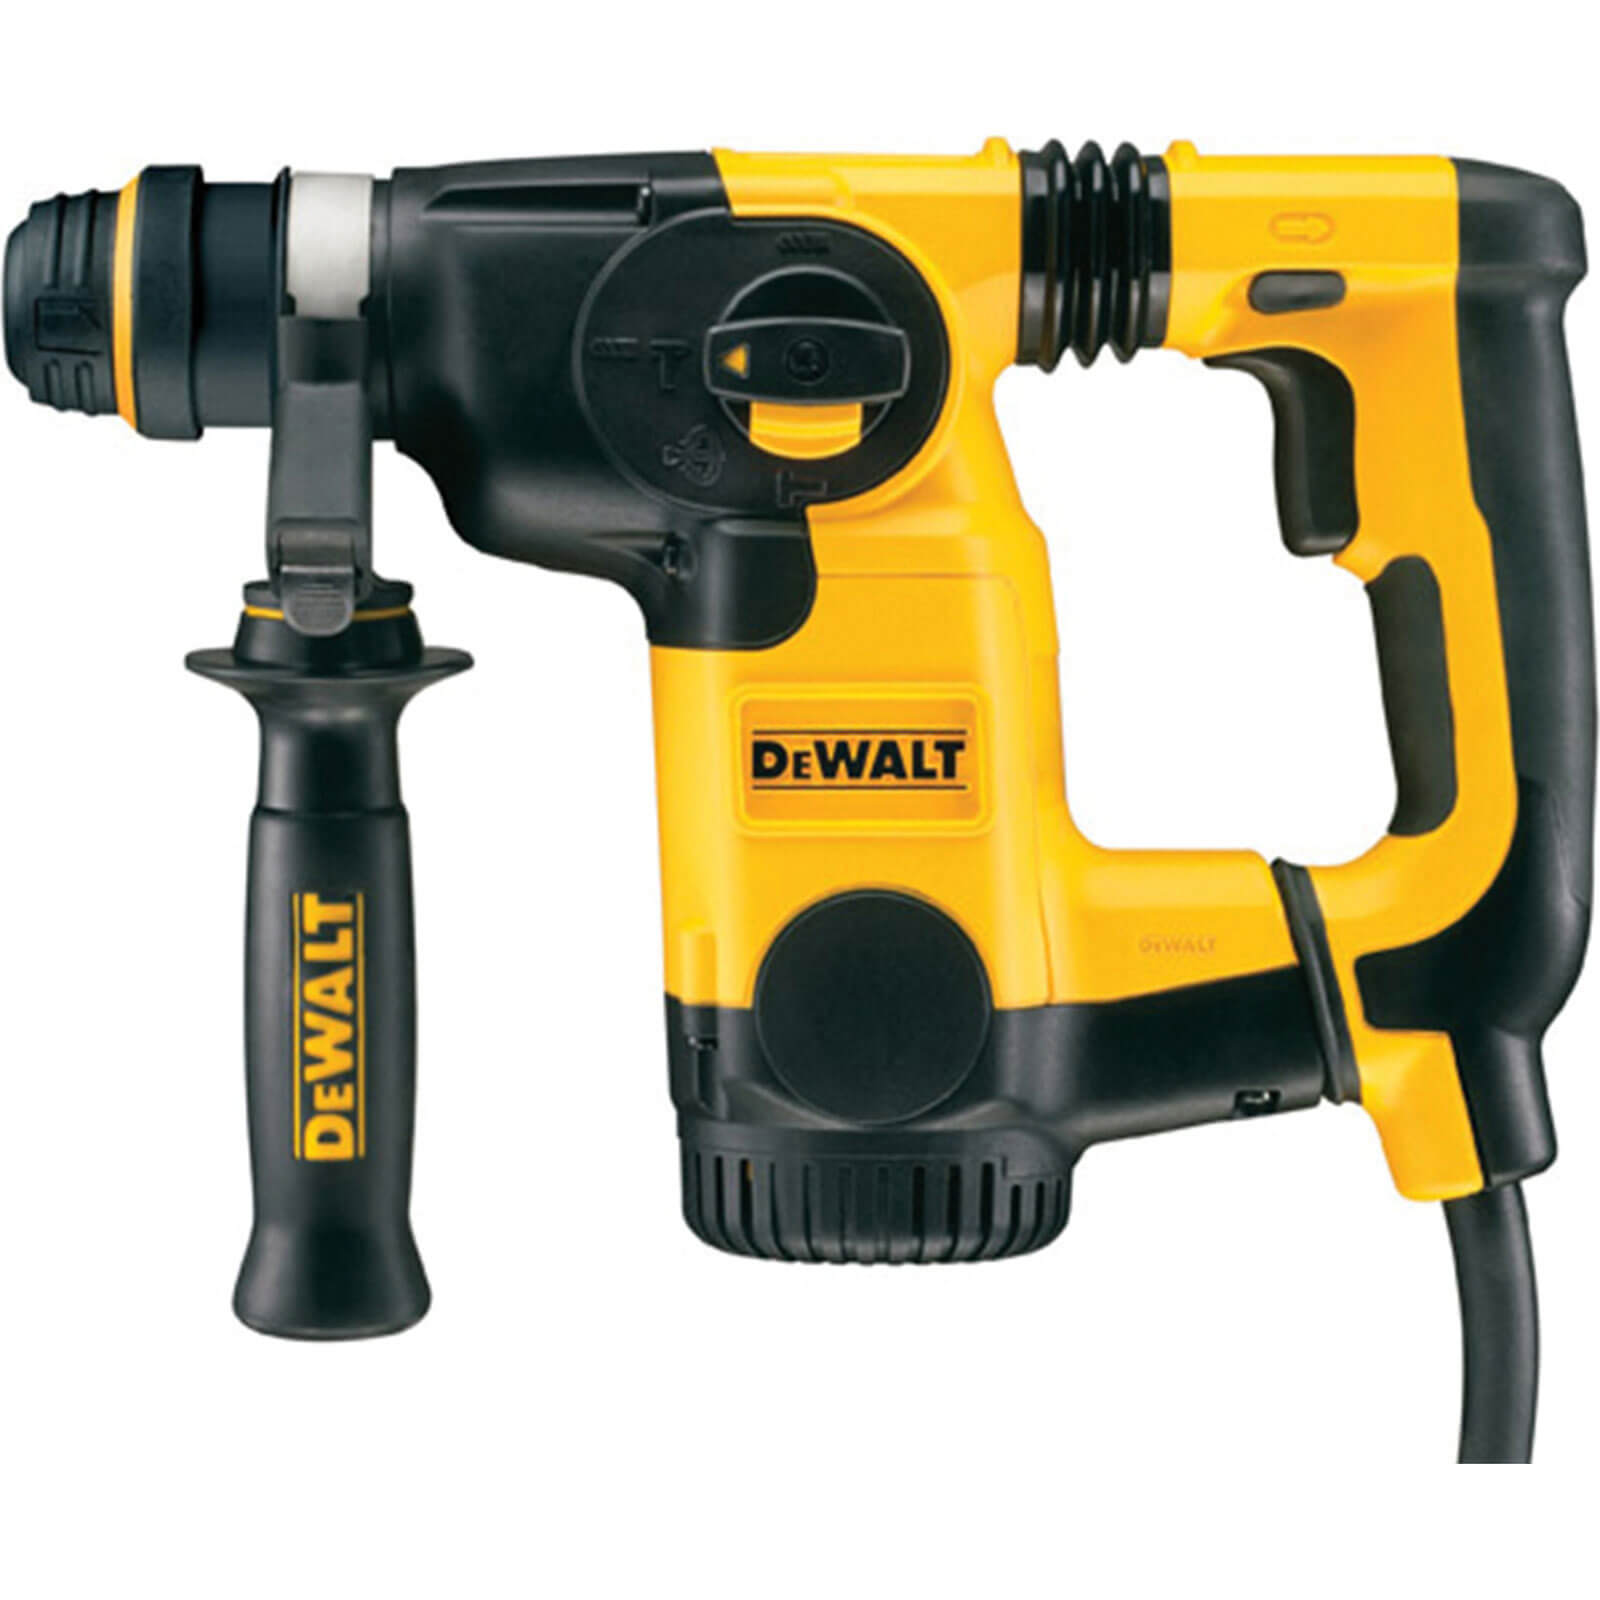 DeWalt D25323K Low Vibration SDS Plus Hammer Drill 3 Mode 800w 110v